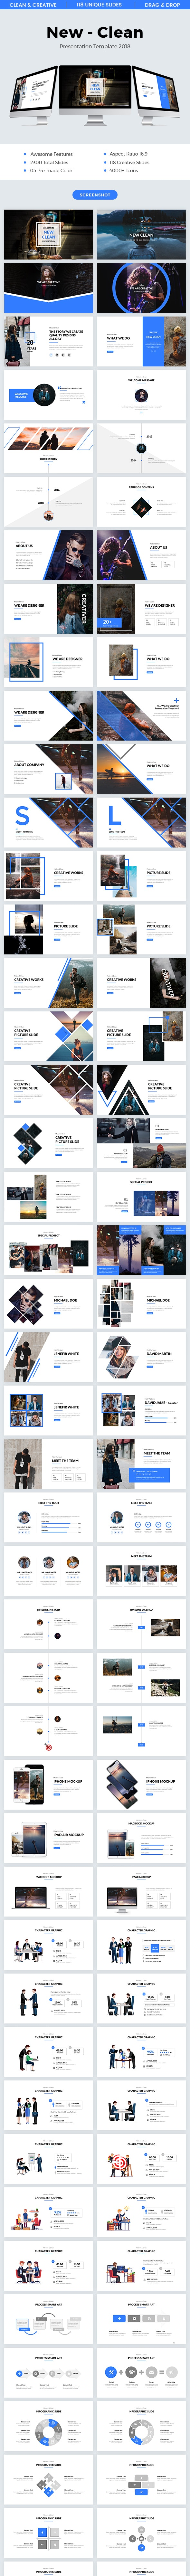 Clean Powerpoint Template 2018 - PowerPoint Templates Presentation Templates